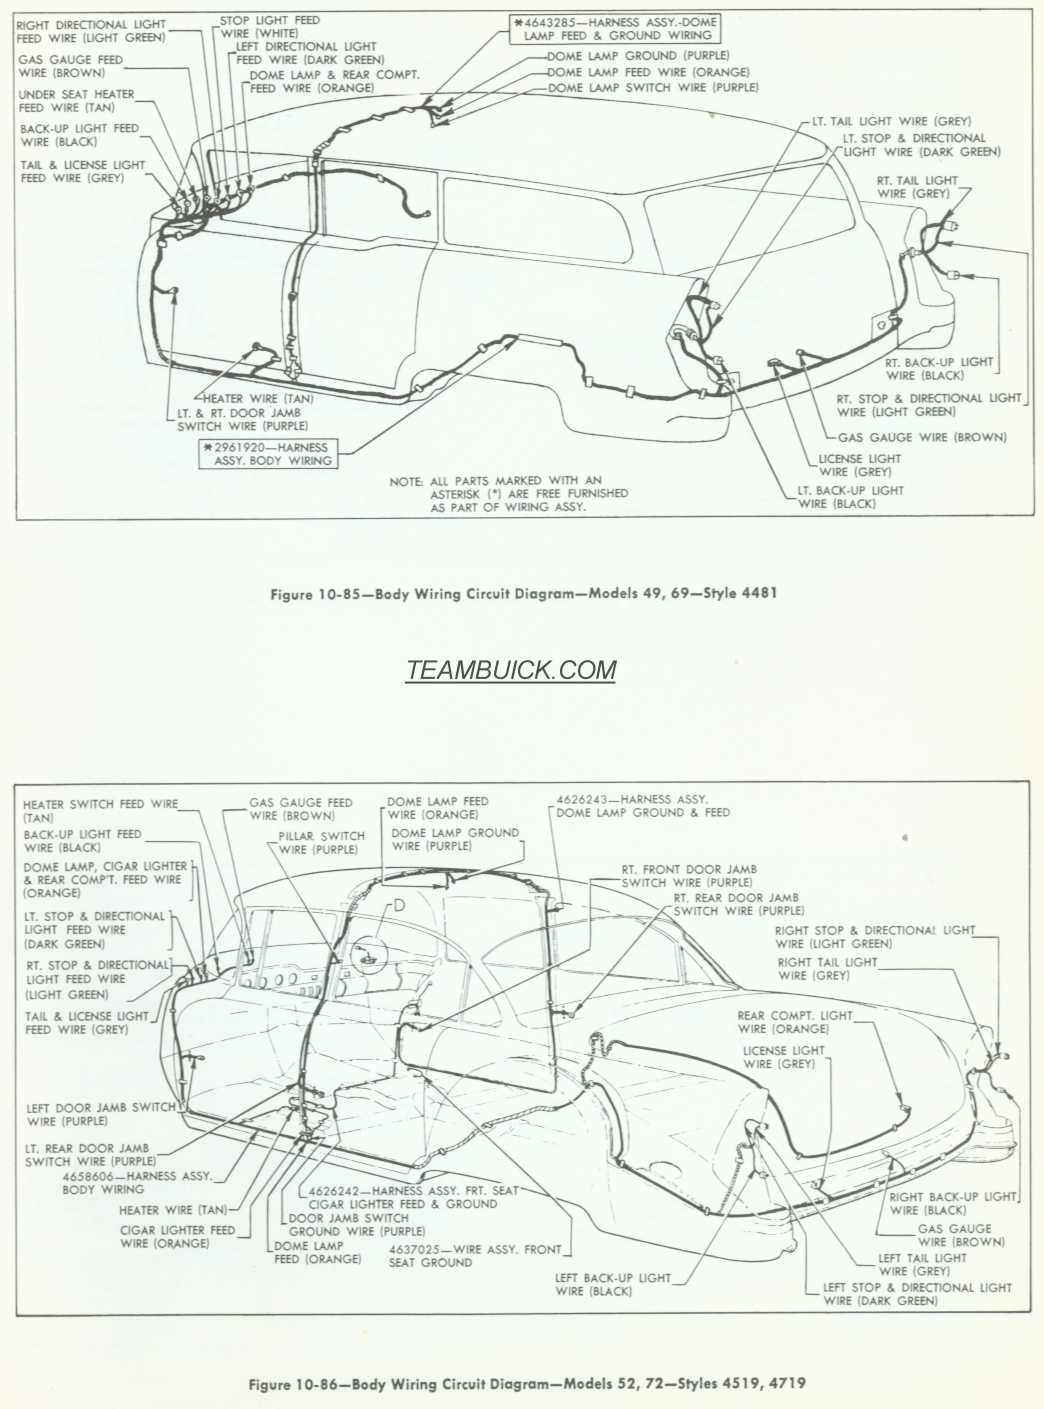 72 chevy neutral safety switch wiring buick general motors wiring diagrams imageresizertool com #13